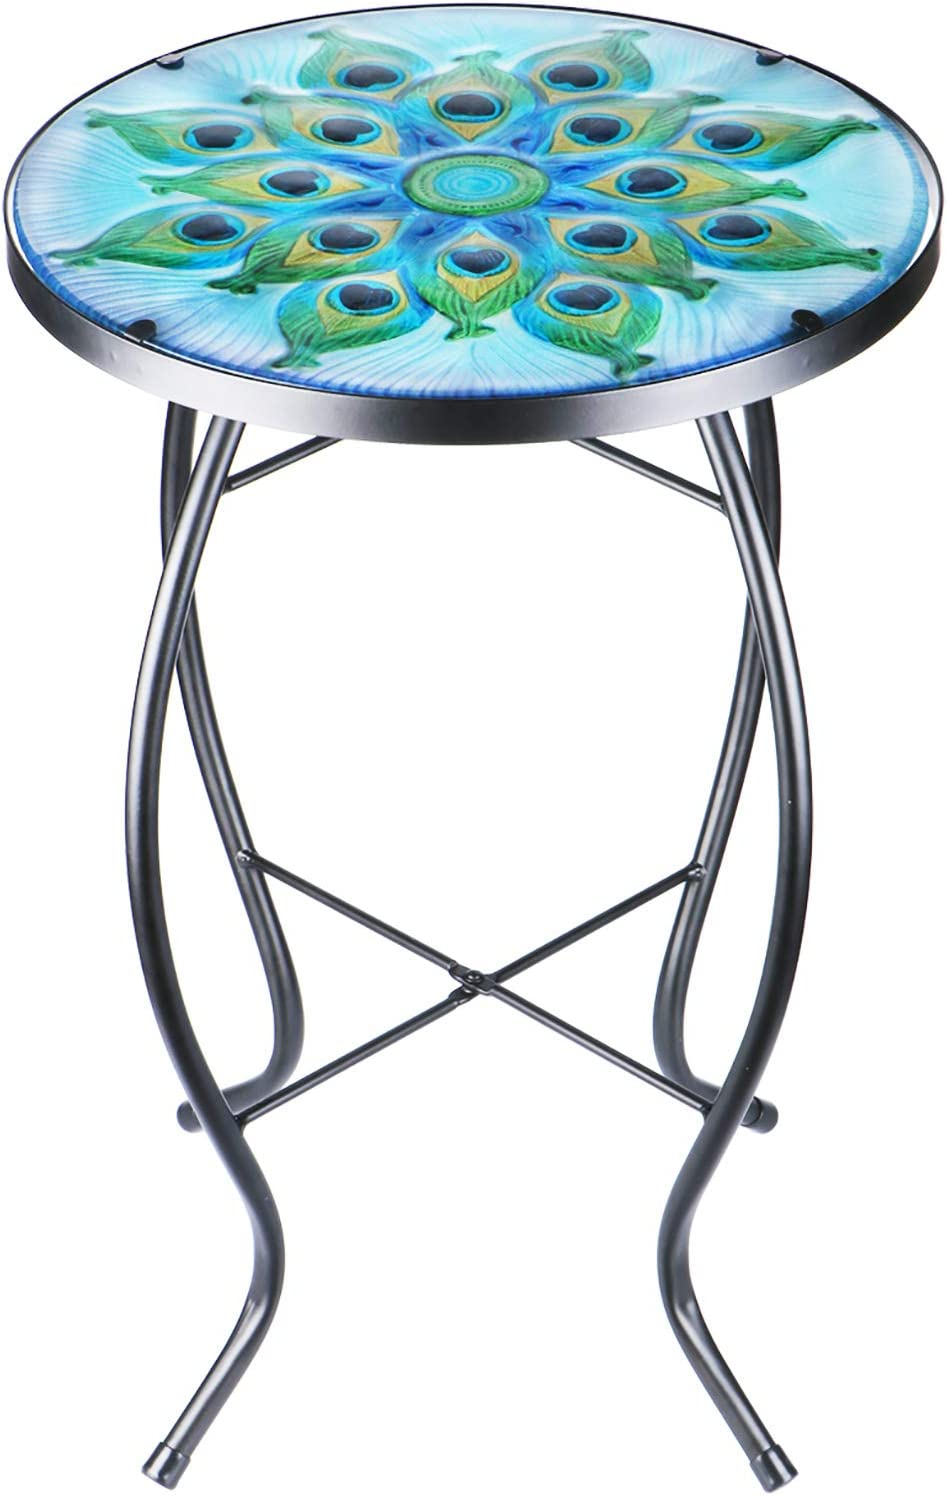 Patio Side Table Accent Table Small Outdoor Mosaic Coffee Table Glass Round Table for Patio Porch Balcony Back Yard